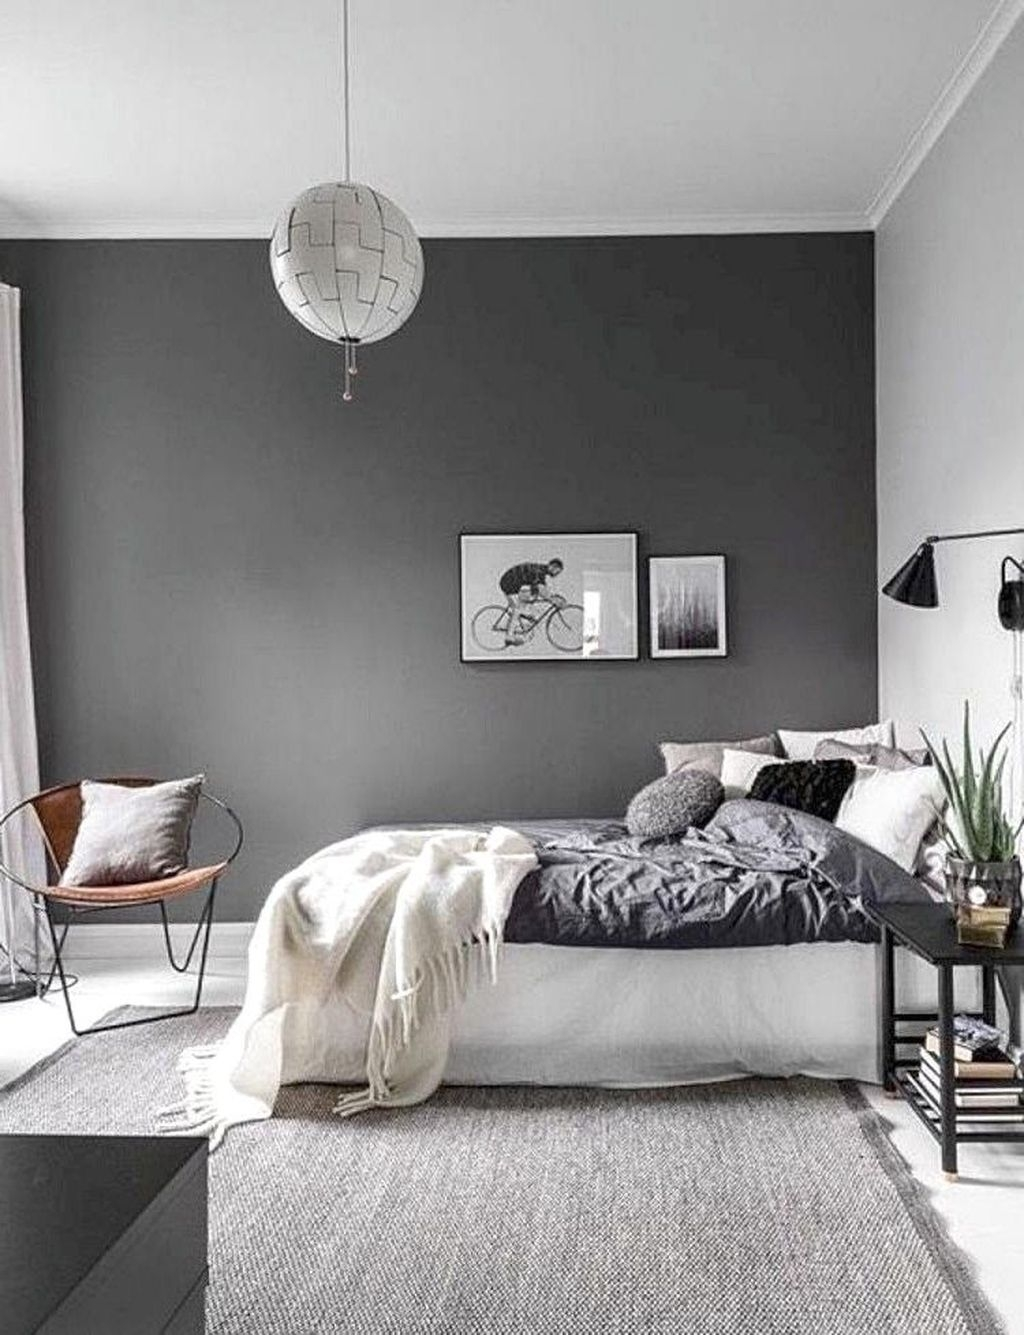 Minimalist Scandinavian Bedroom Decor Ideas 14